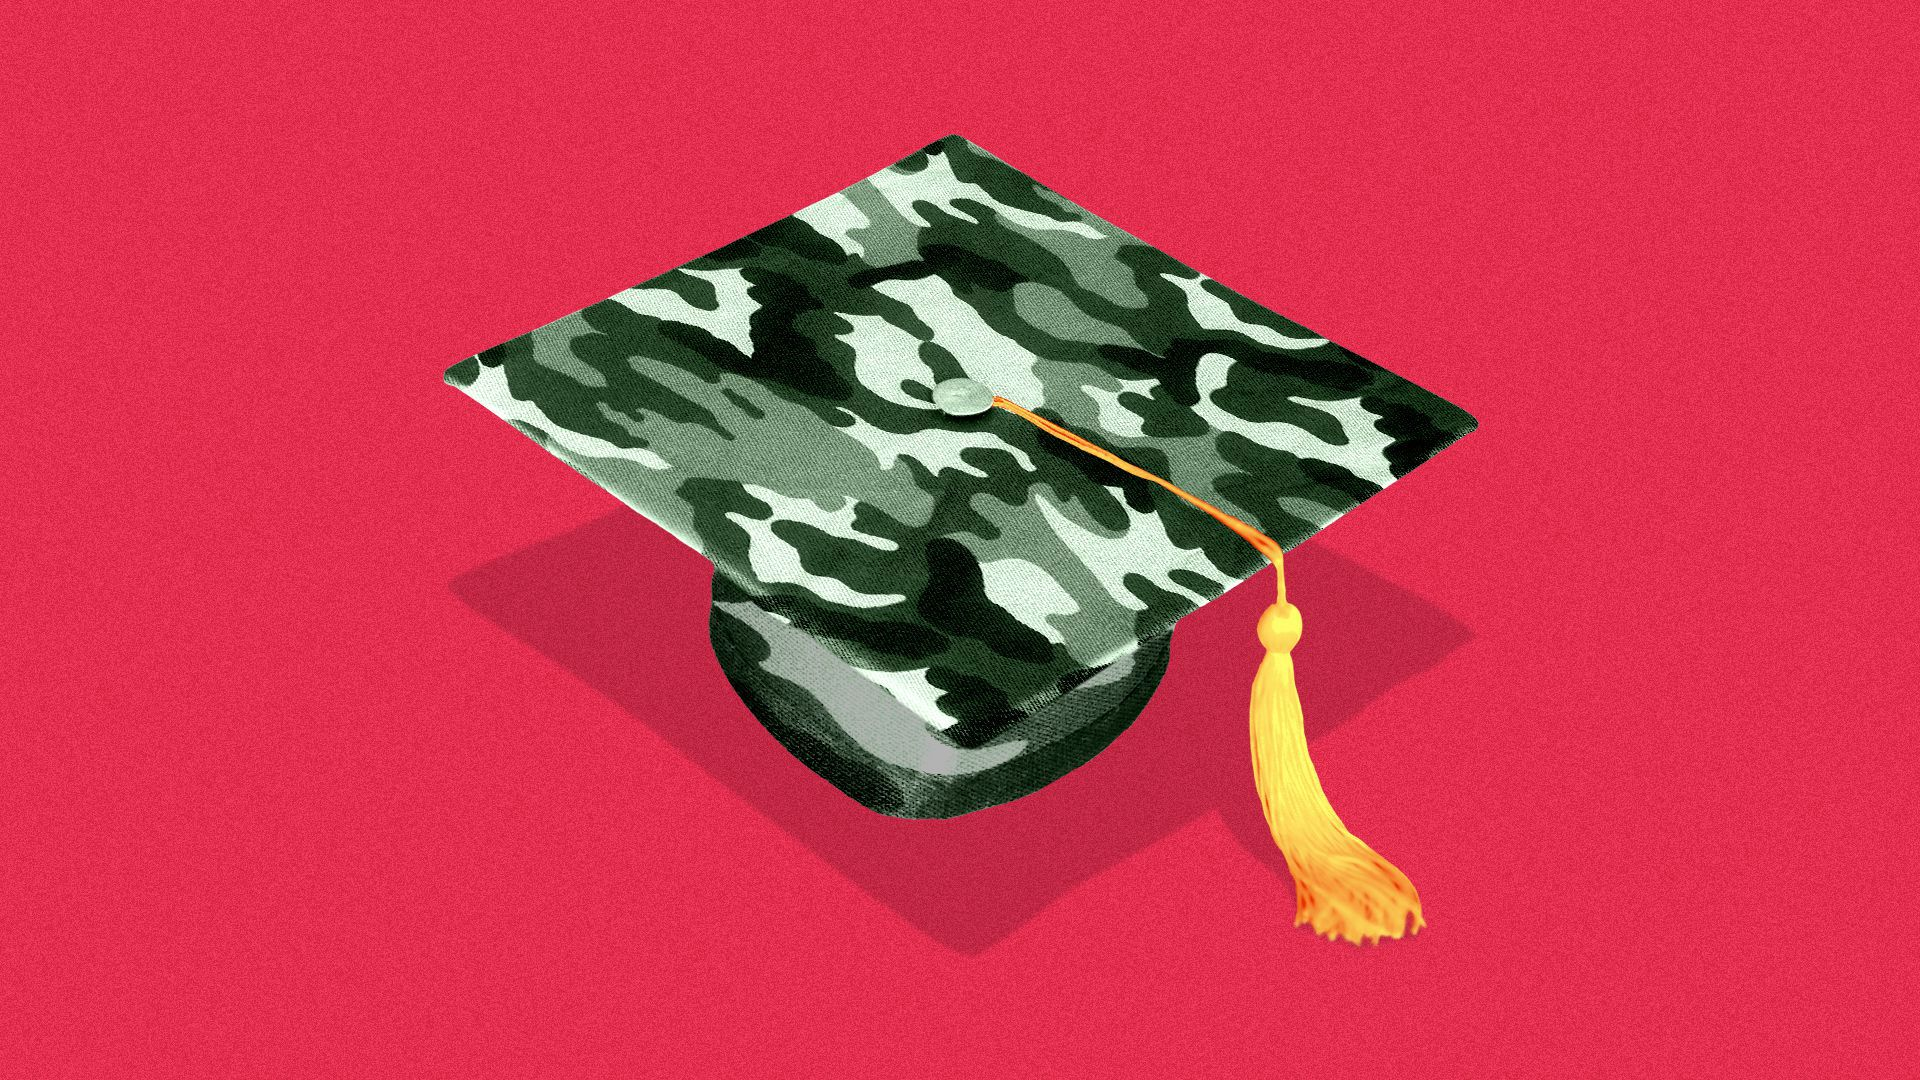 Illustration of a mortarboard with a camouflage pattern on it.